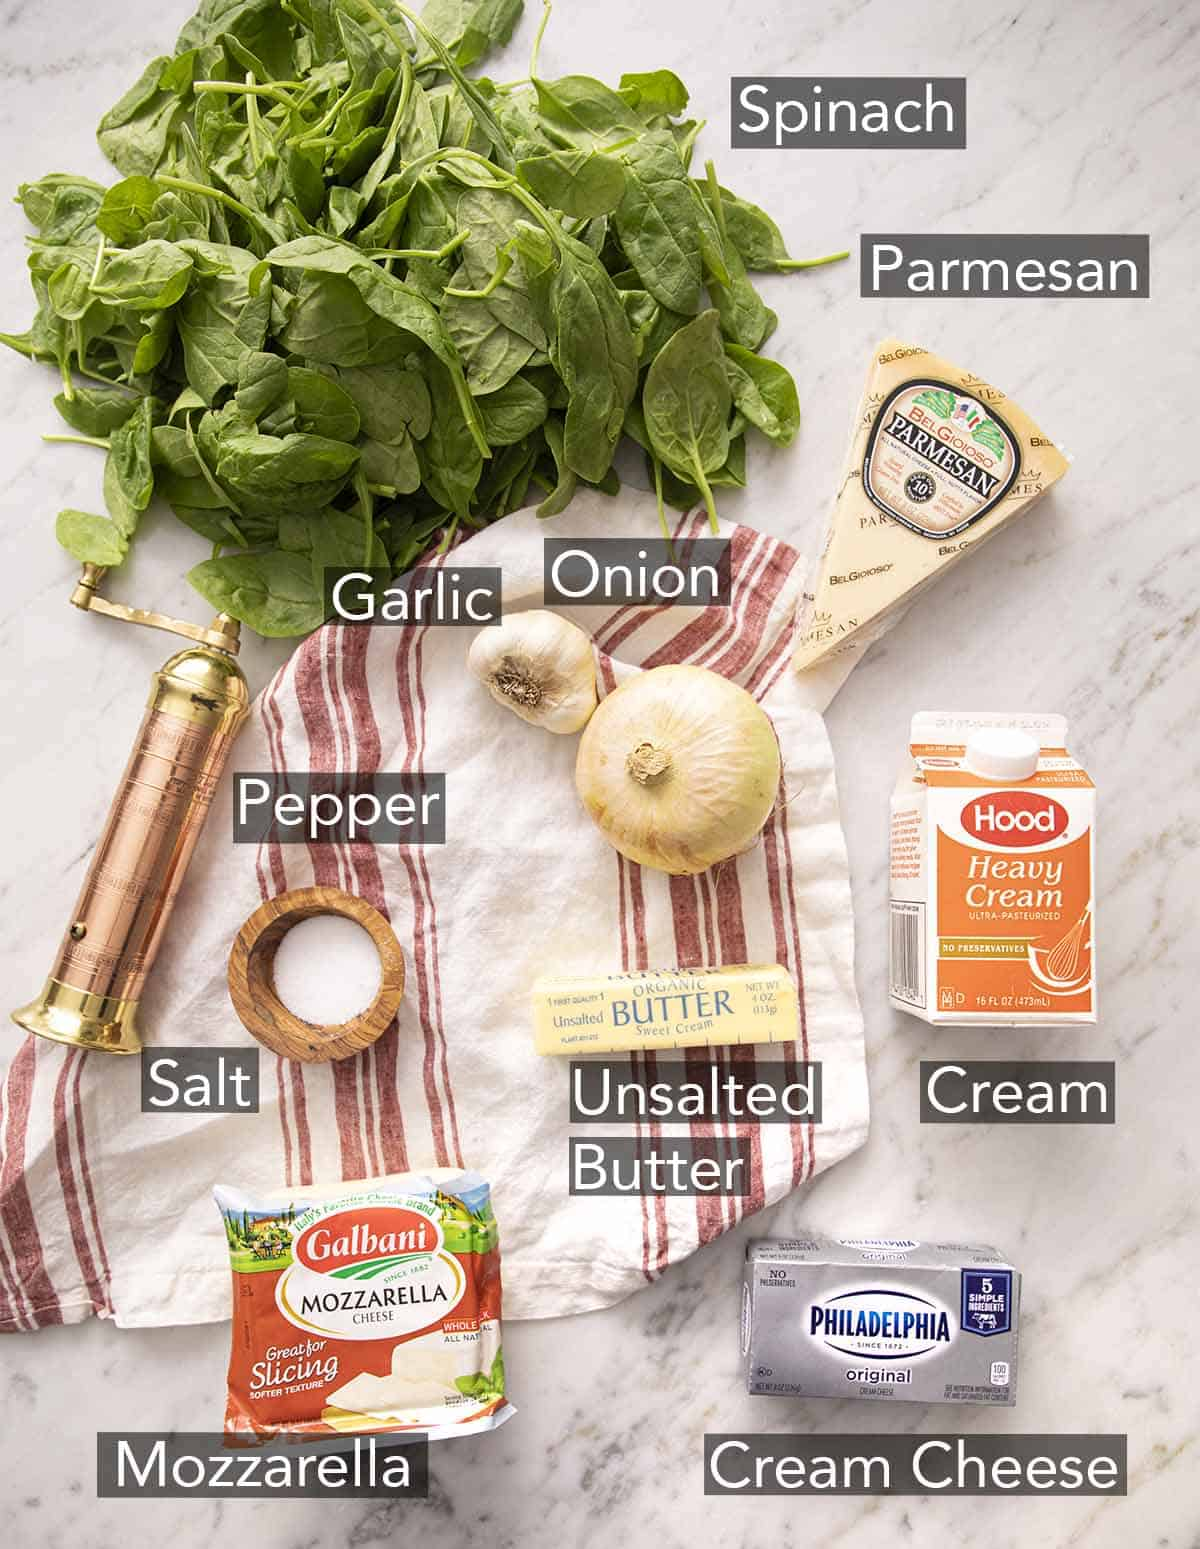 Ingredients to make creamed spinach laying on a marble counter with a striped napkin.